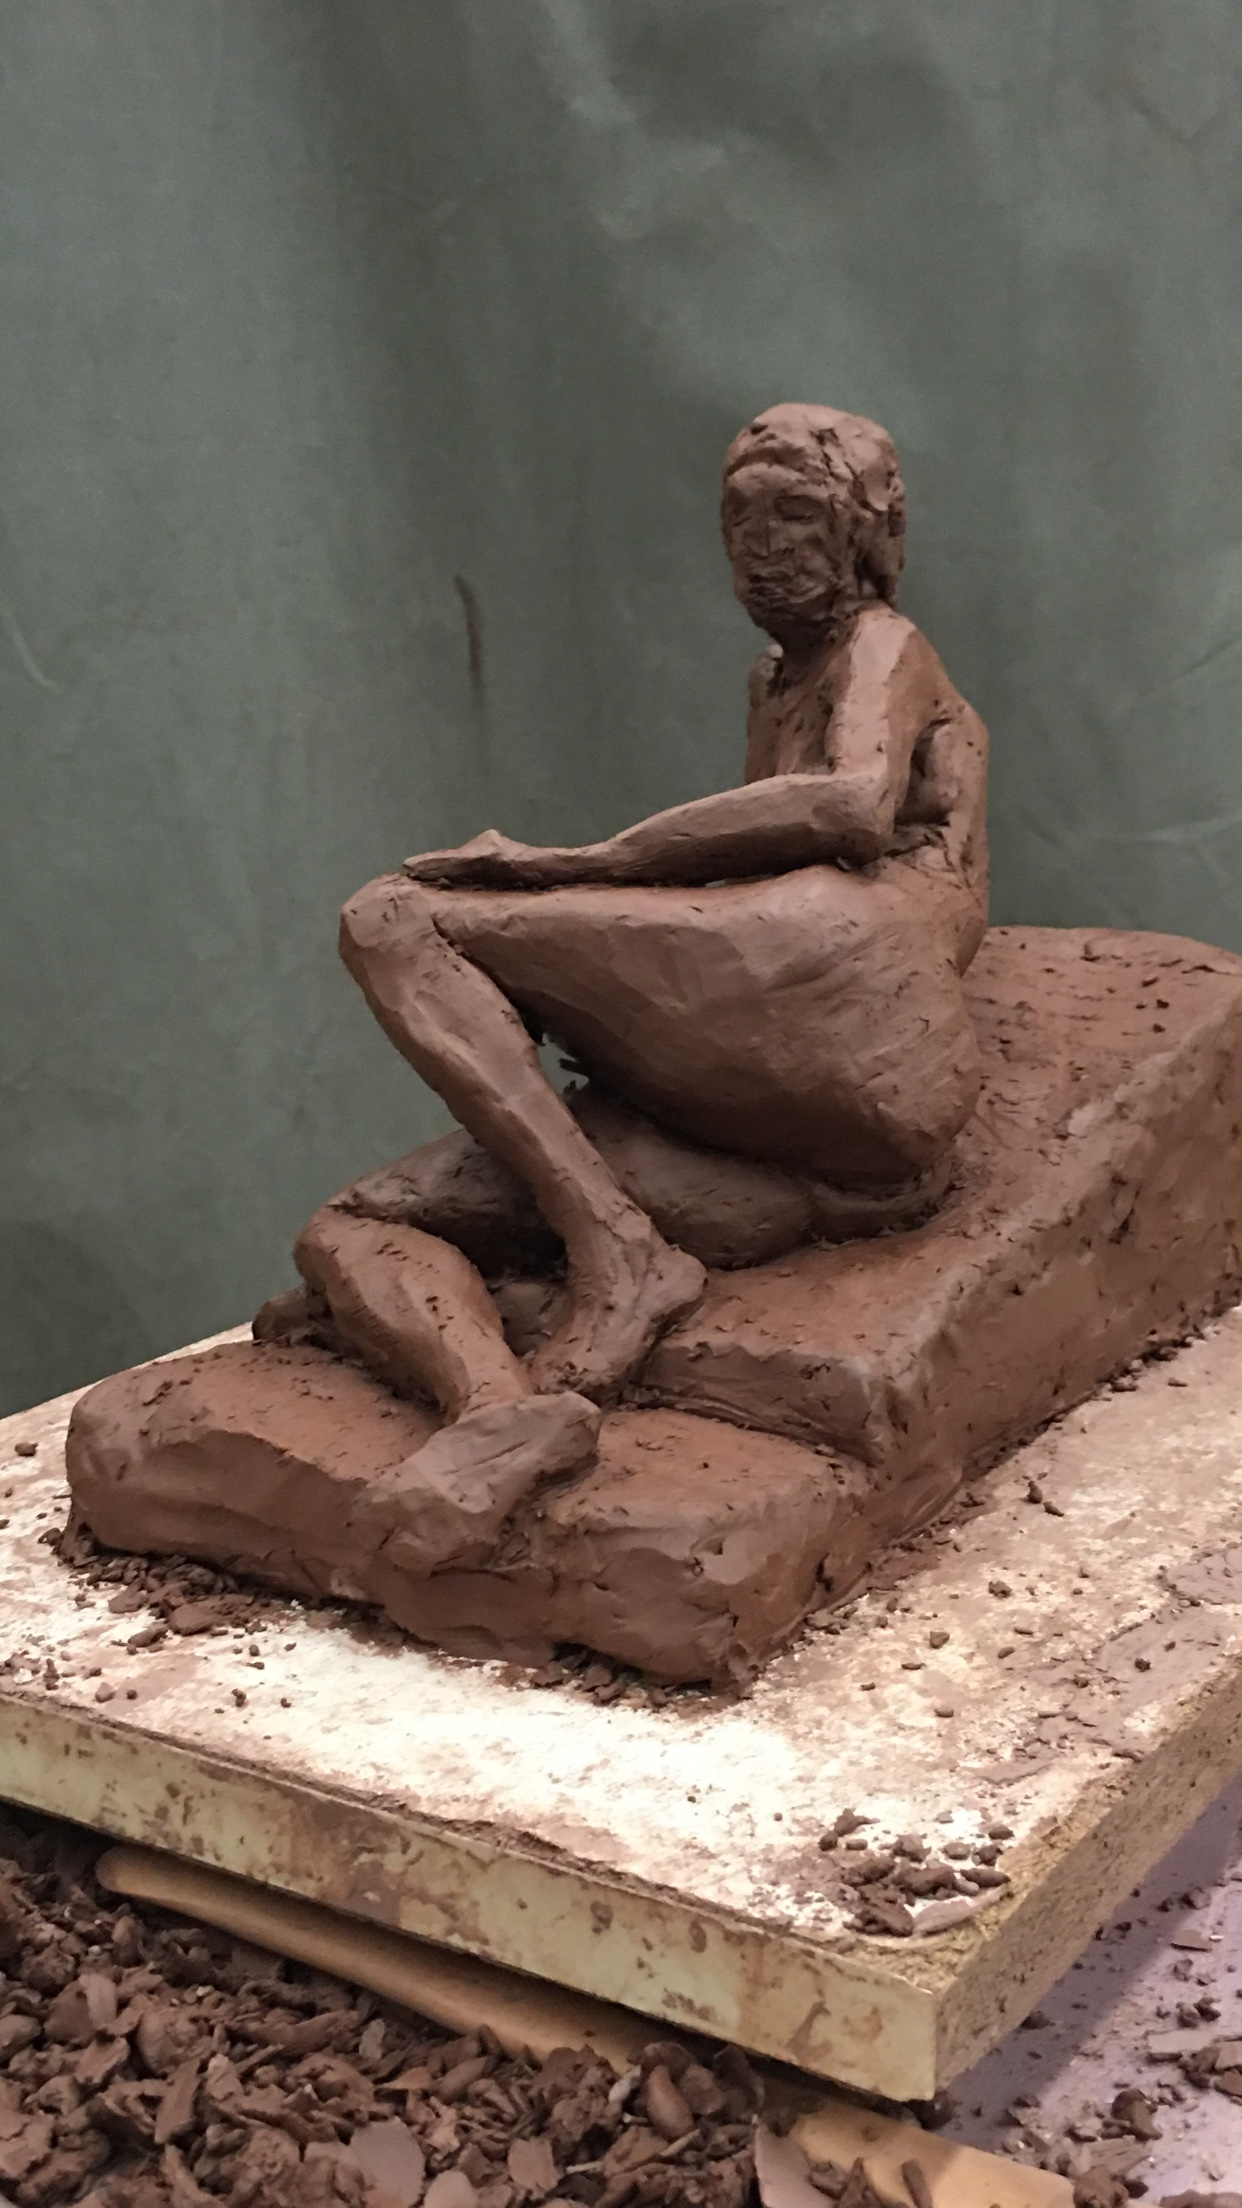 Reclining Woman (3/4 posterior view)